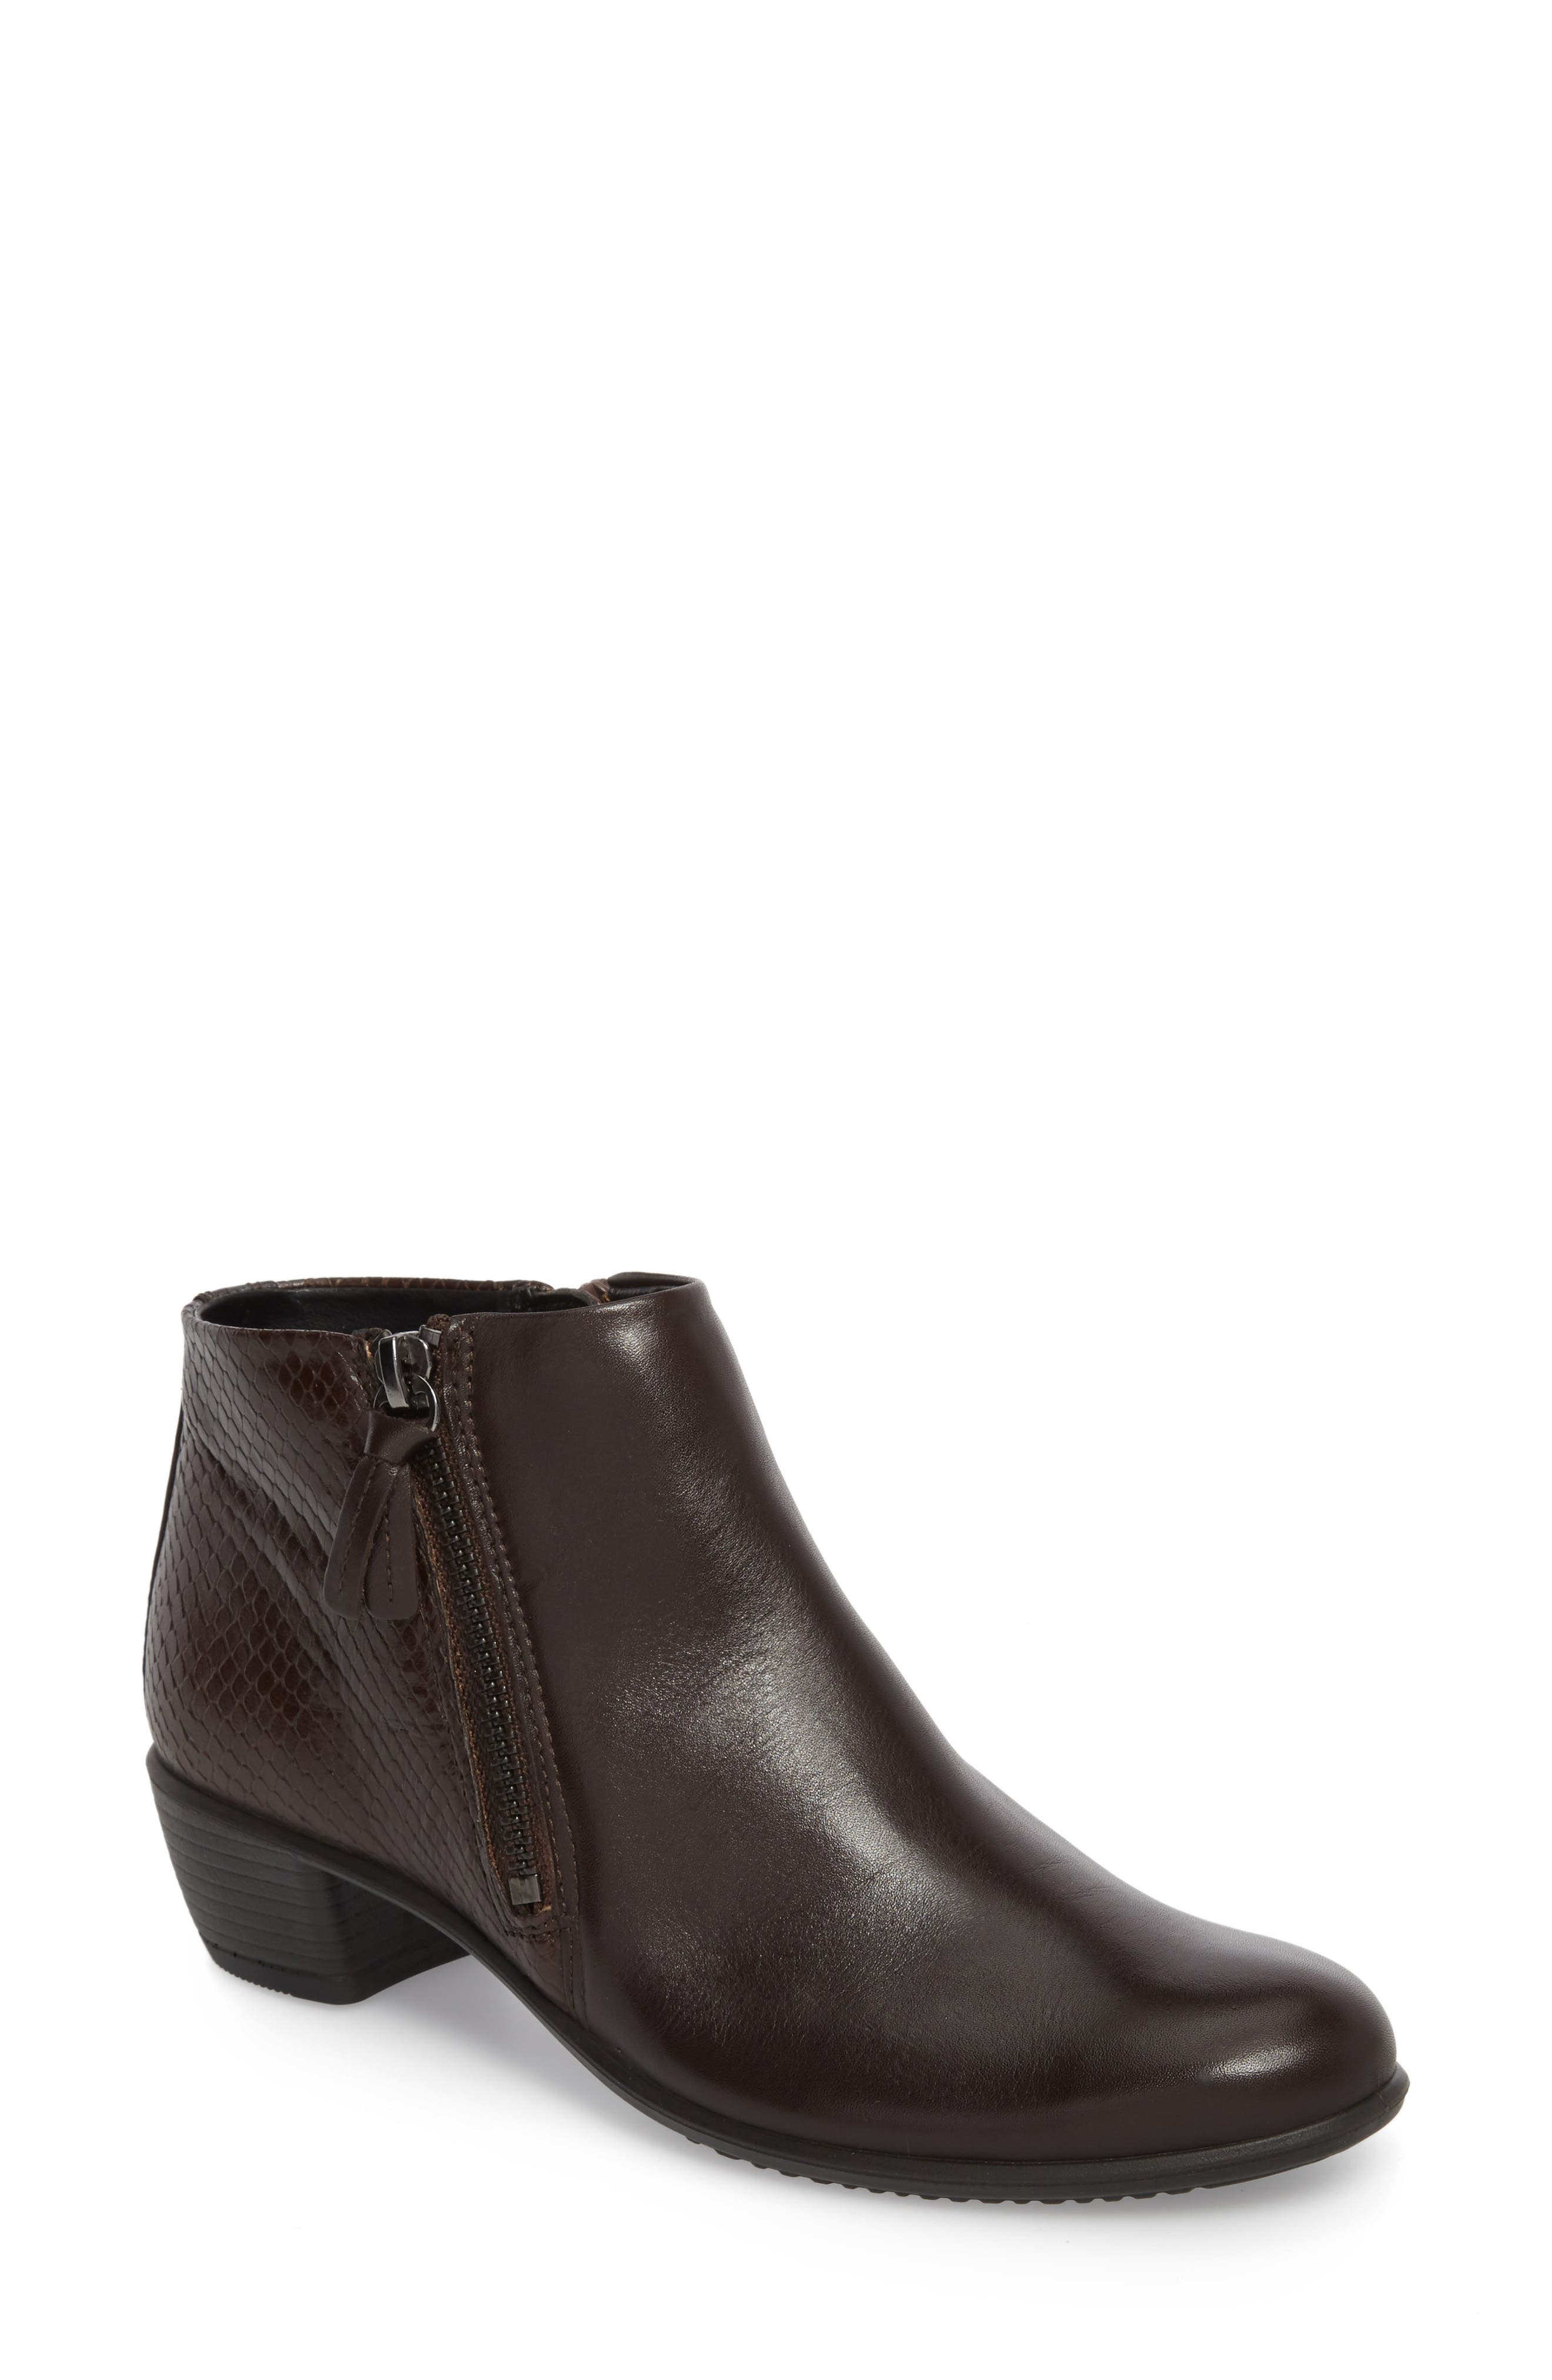 'Touch' Zip Bootie,                         Main,                         color, Coffee Leather